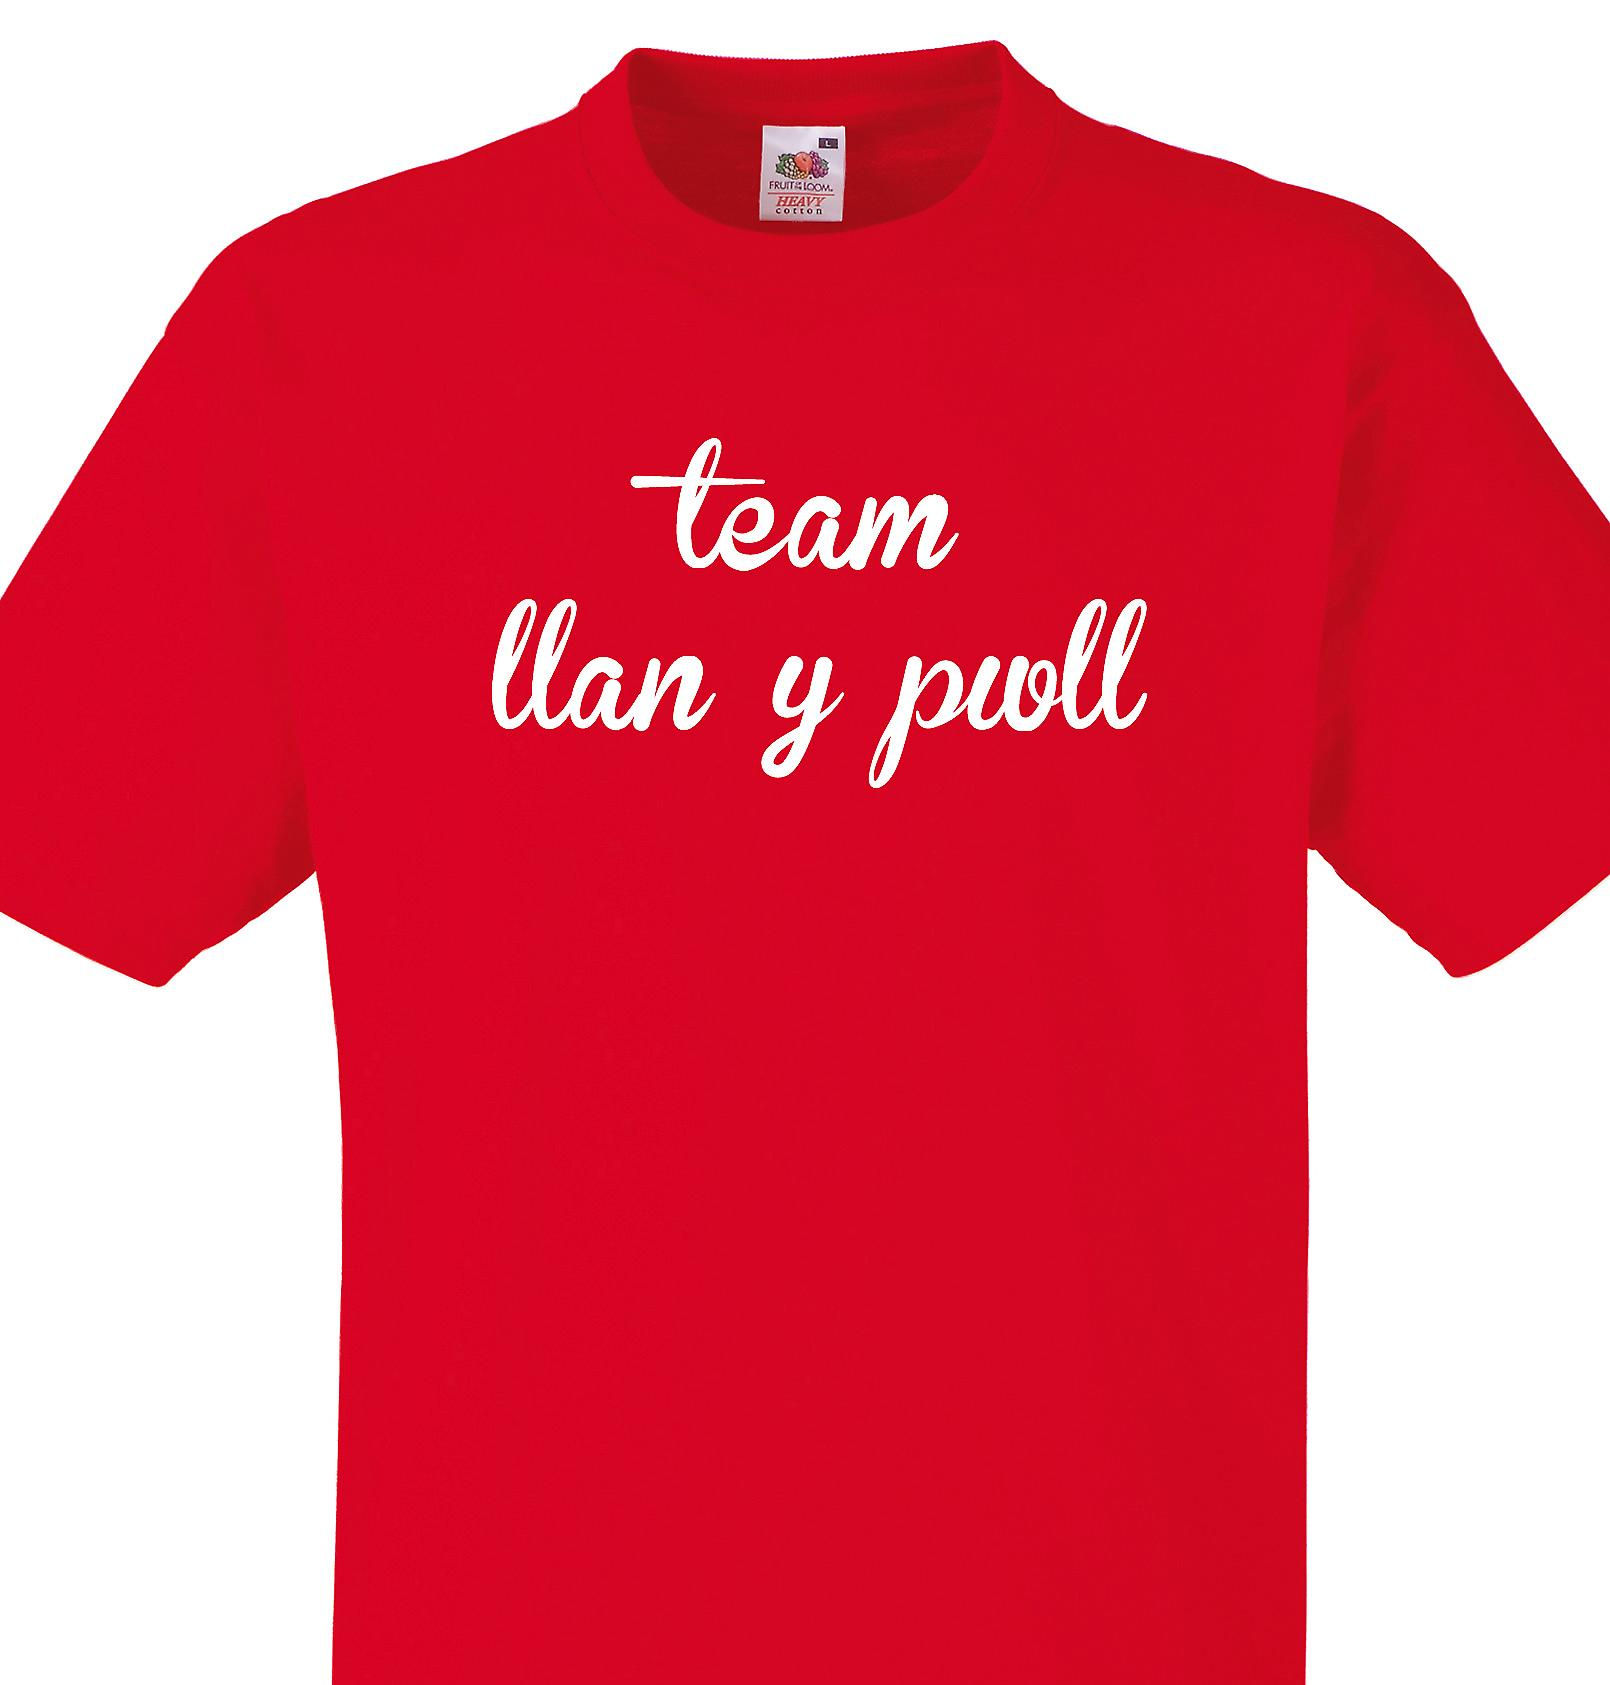 Team Llan y pwll Red T shirt